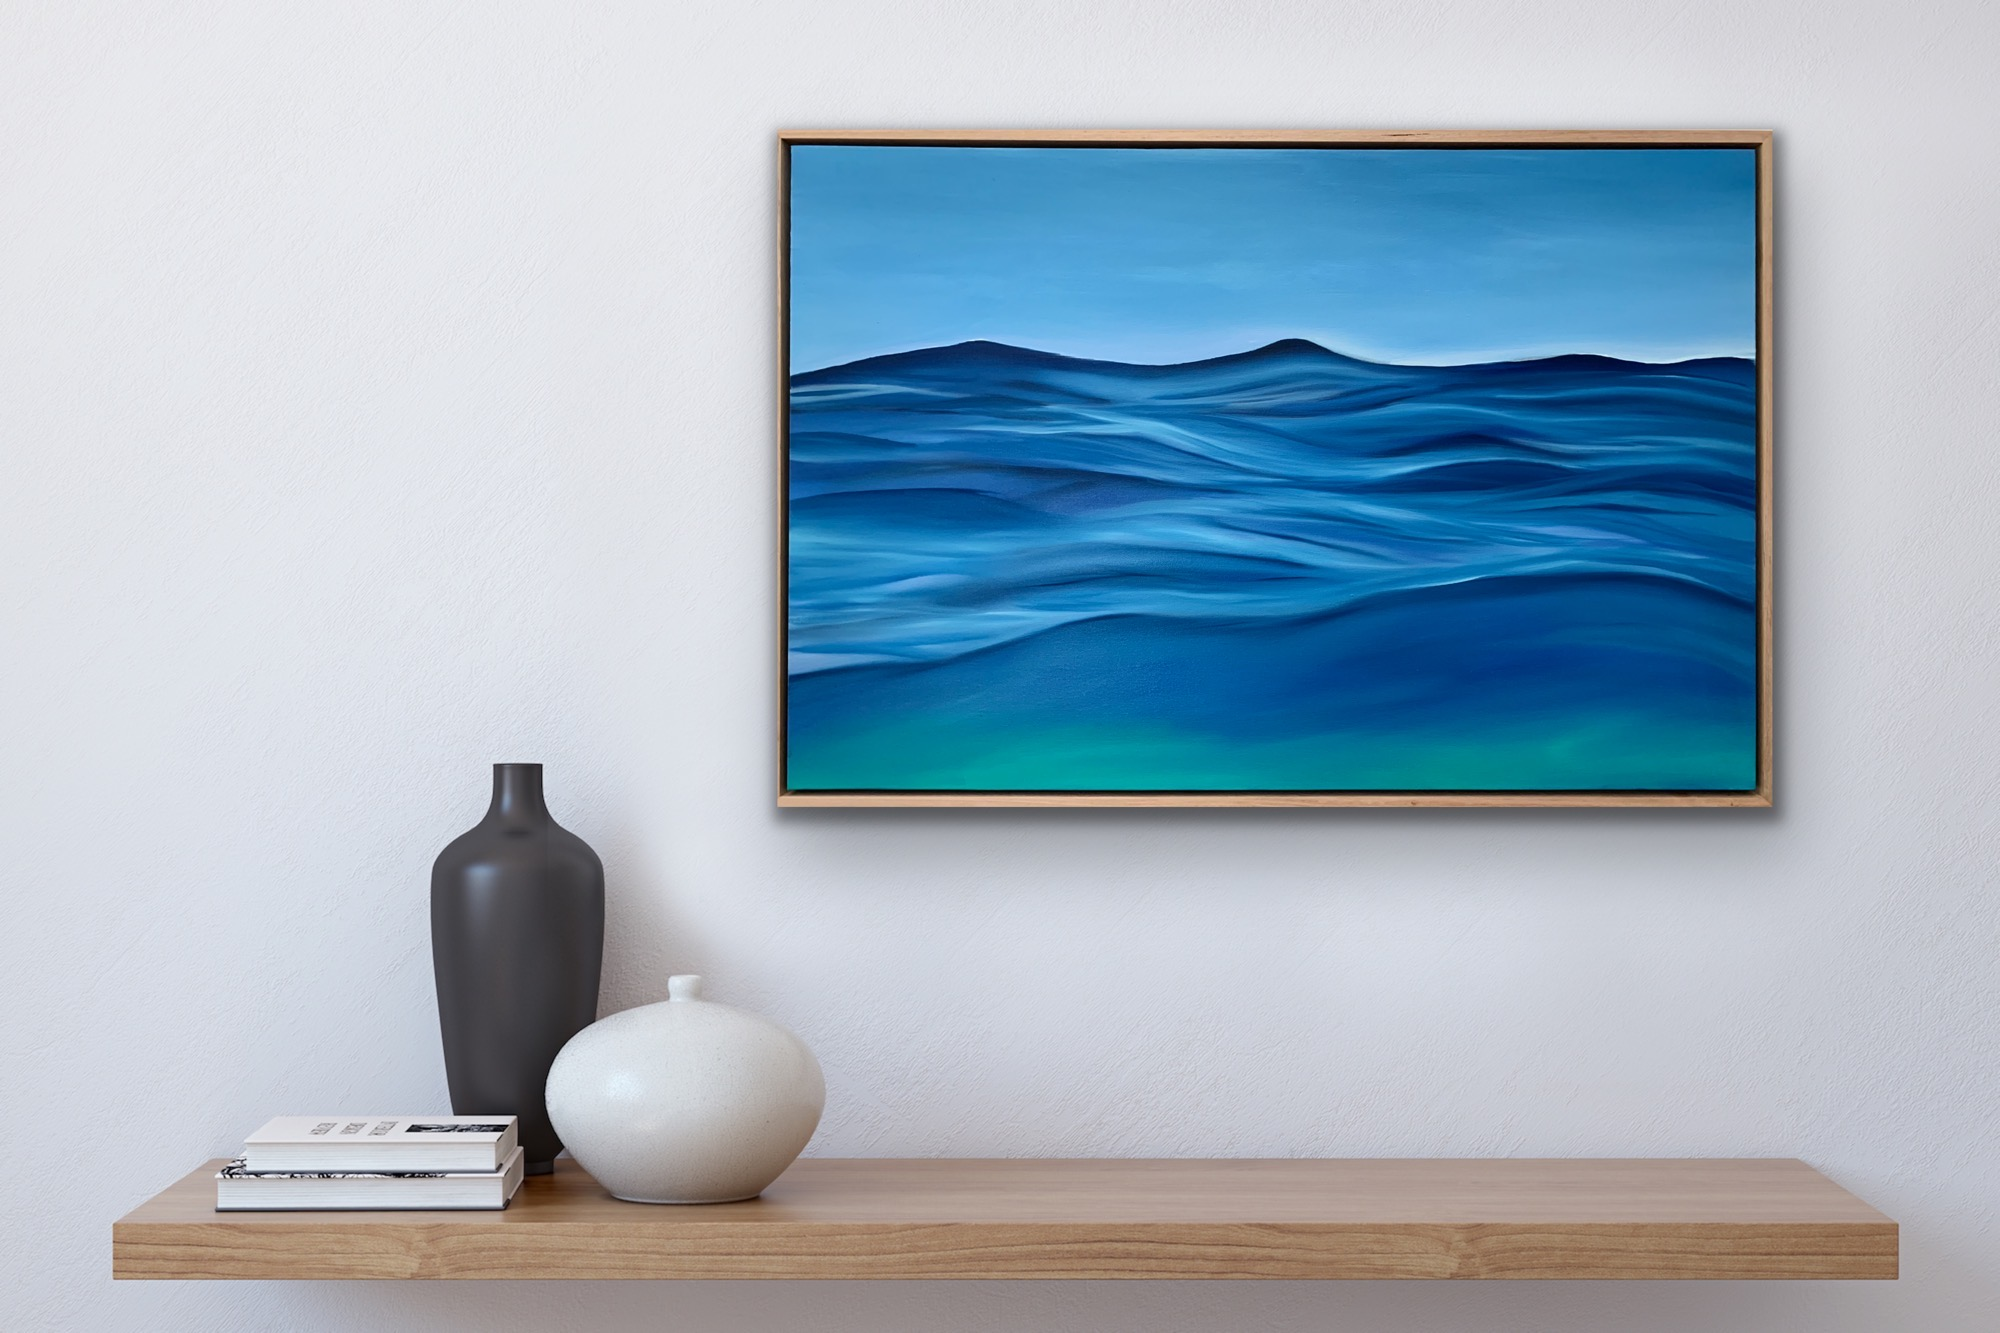 Hero Shot Alanah Jarvis Smell Of Summertime Ocean Painting